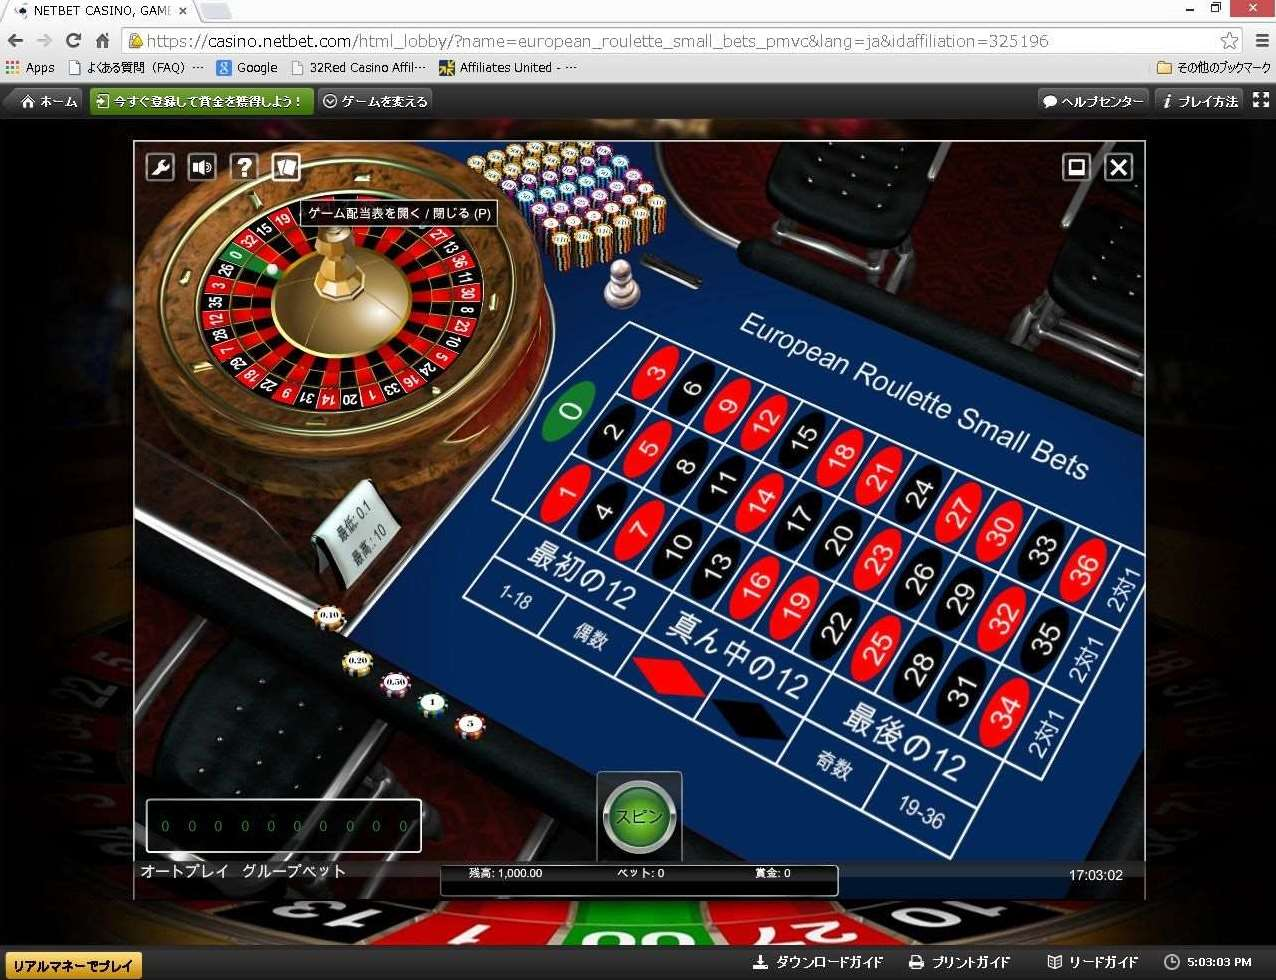 European Roulette Small Bets2